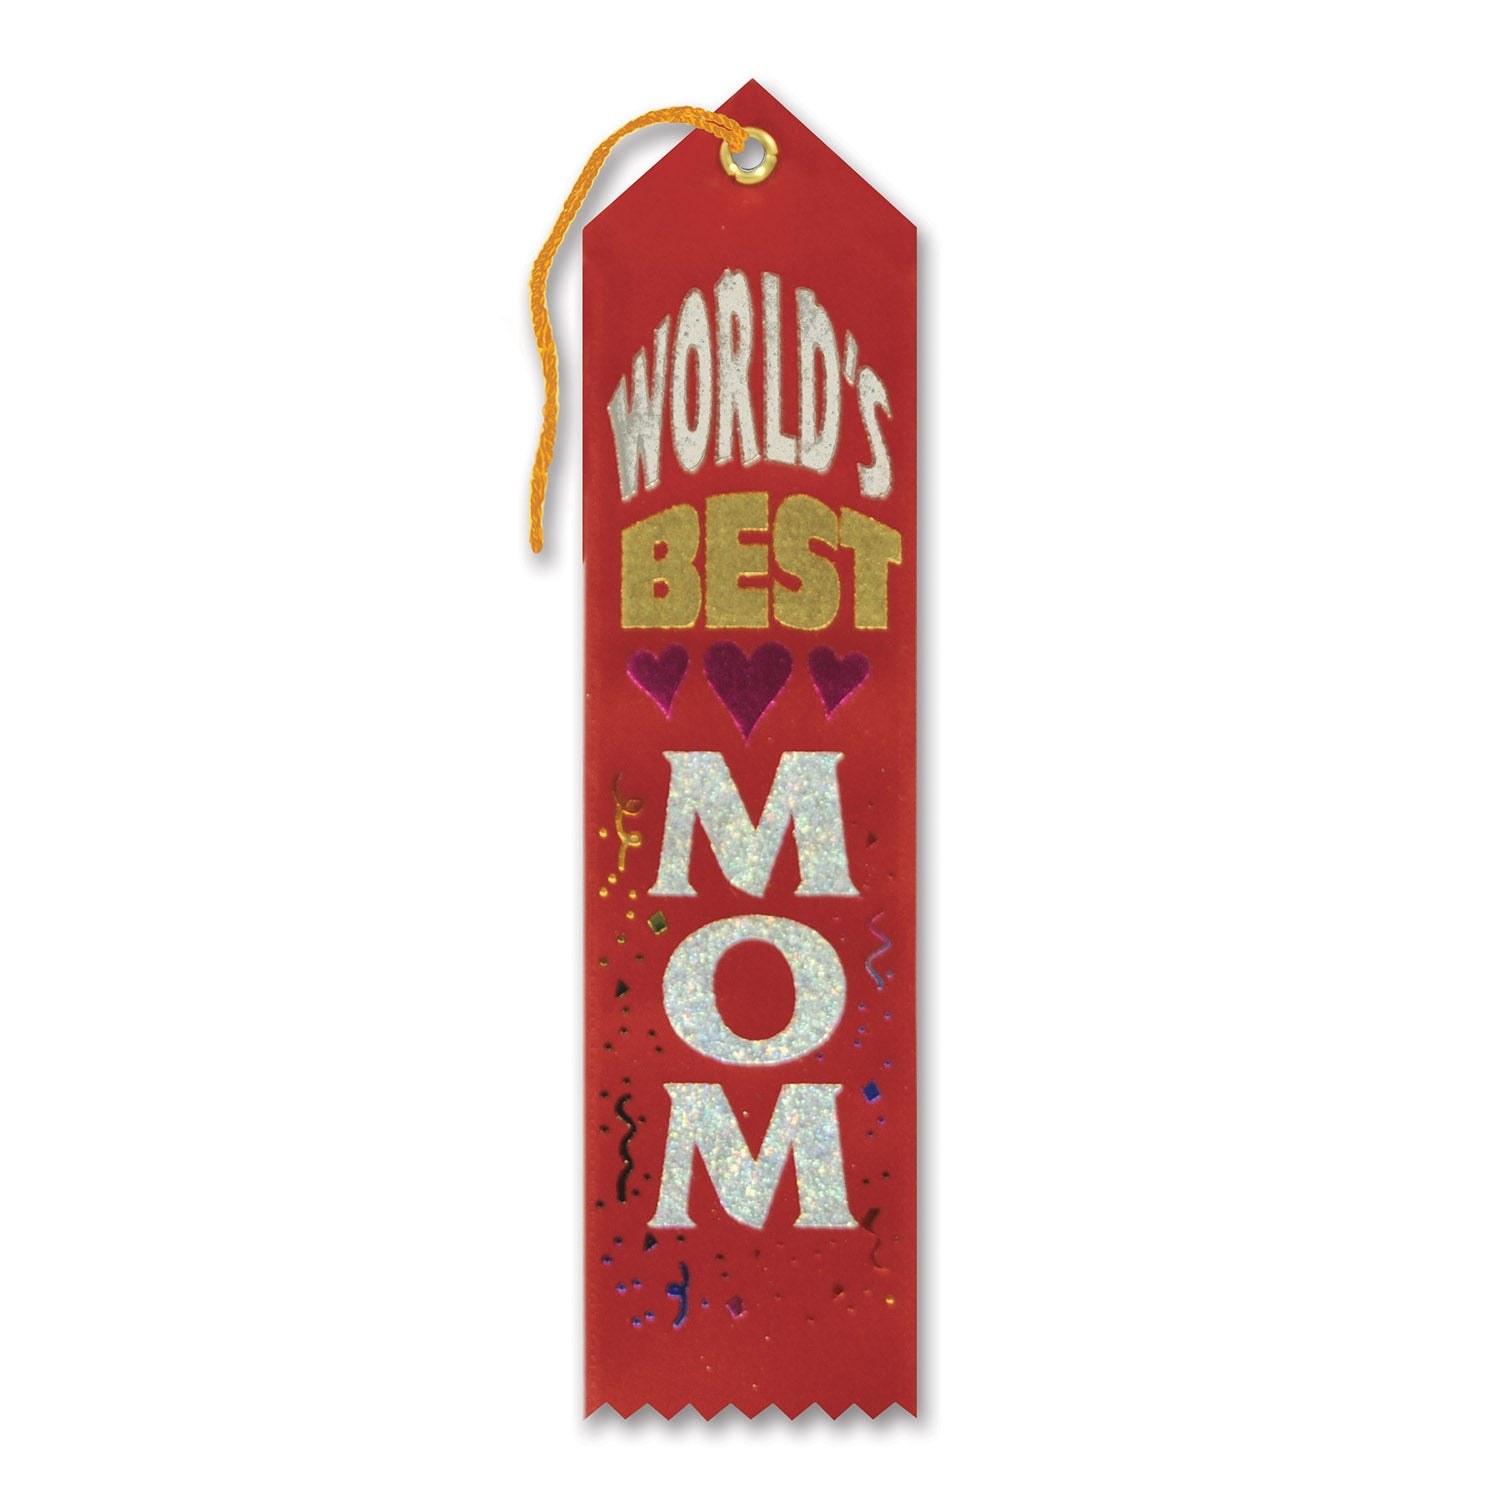 World's Best Mom Award Ribbon, red by Beistle - Mother's Day Theme Decorations